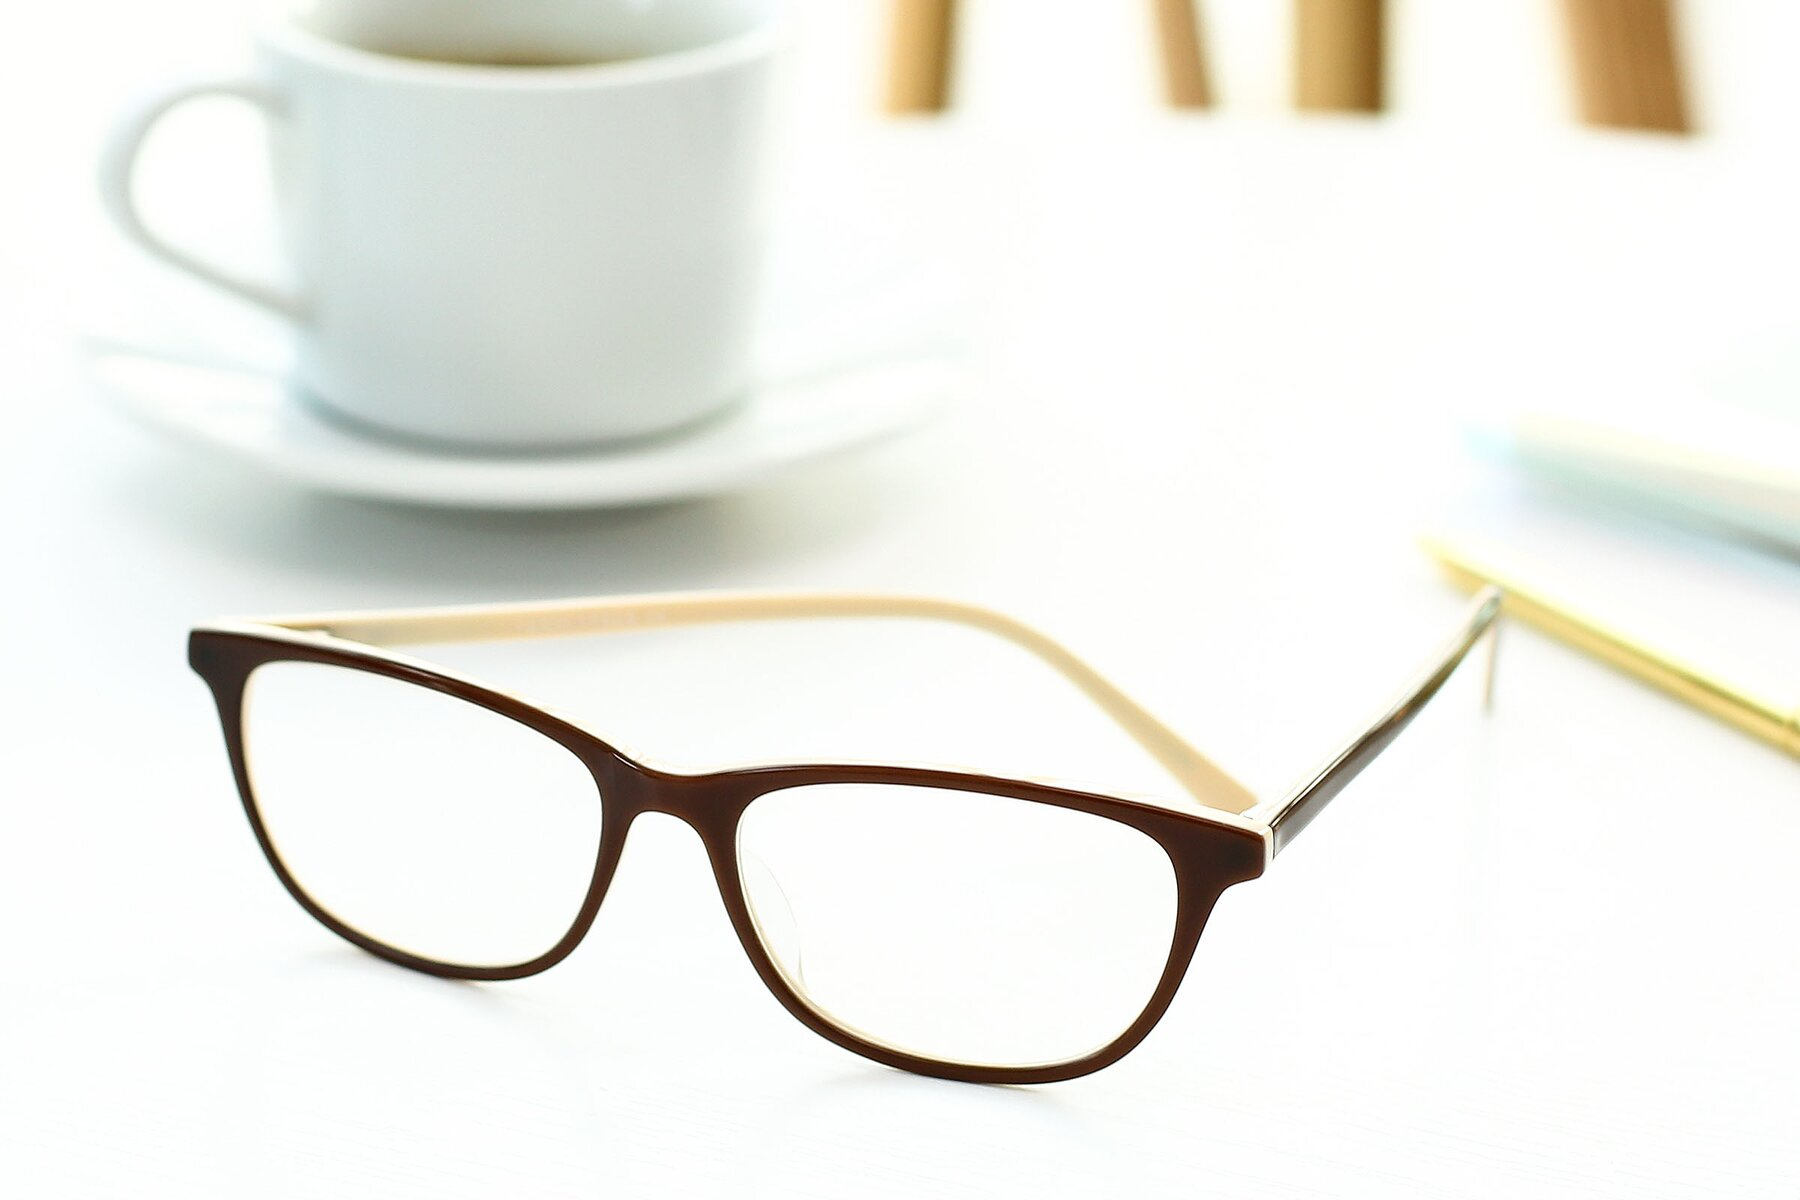 Lifestyle photography #2 of SR6026 in Coffee with Clear Eyeglass Lenses